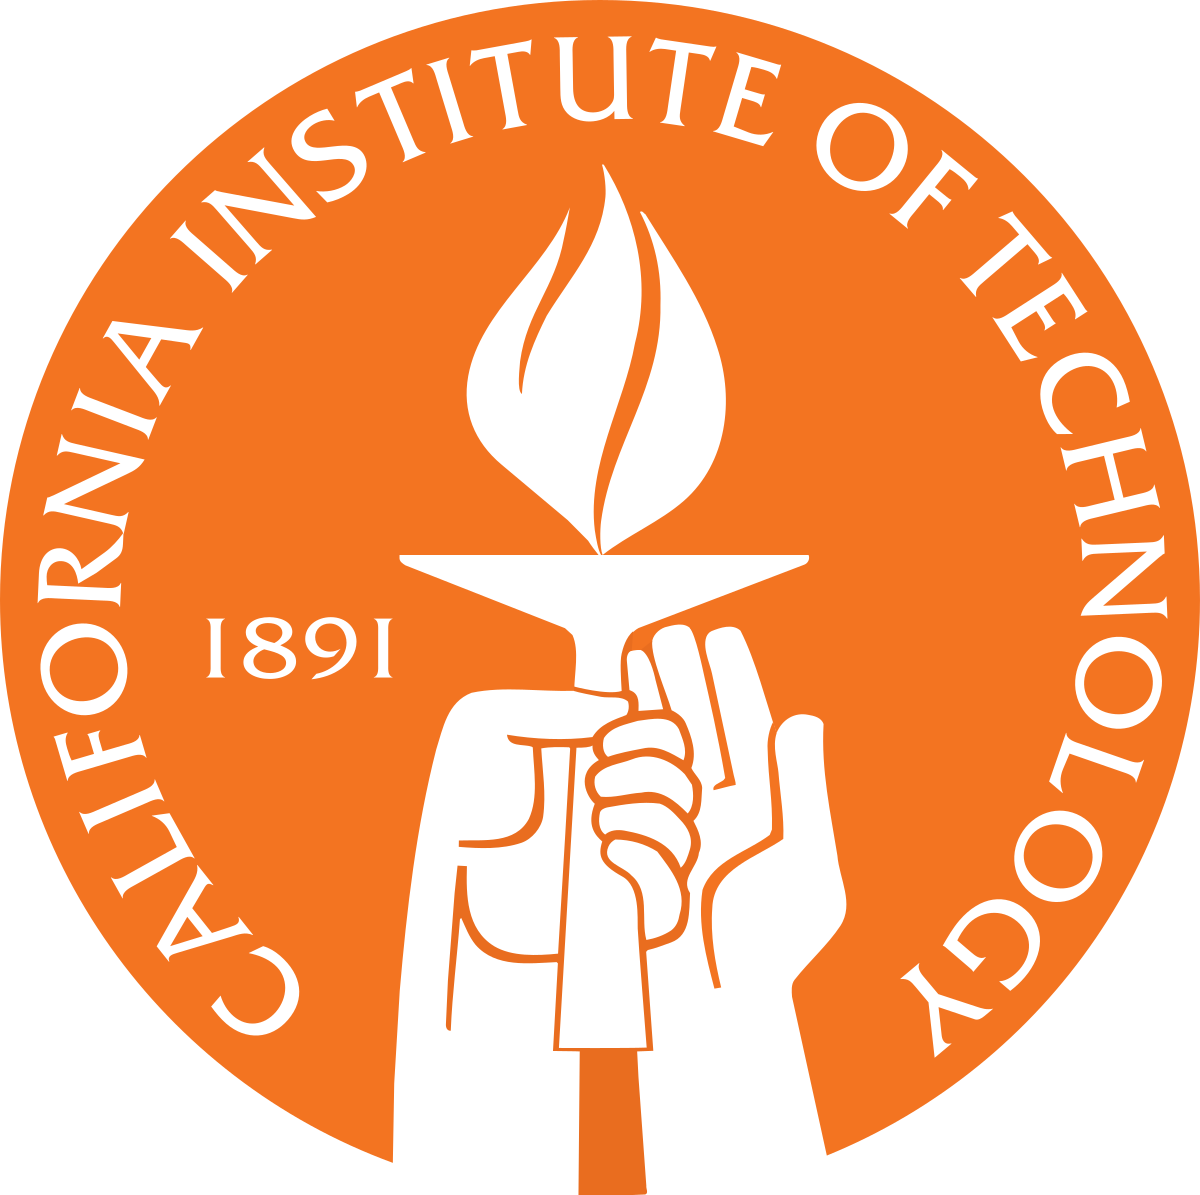 California svg word. Institute of technology wikipedia